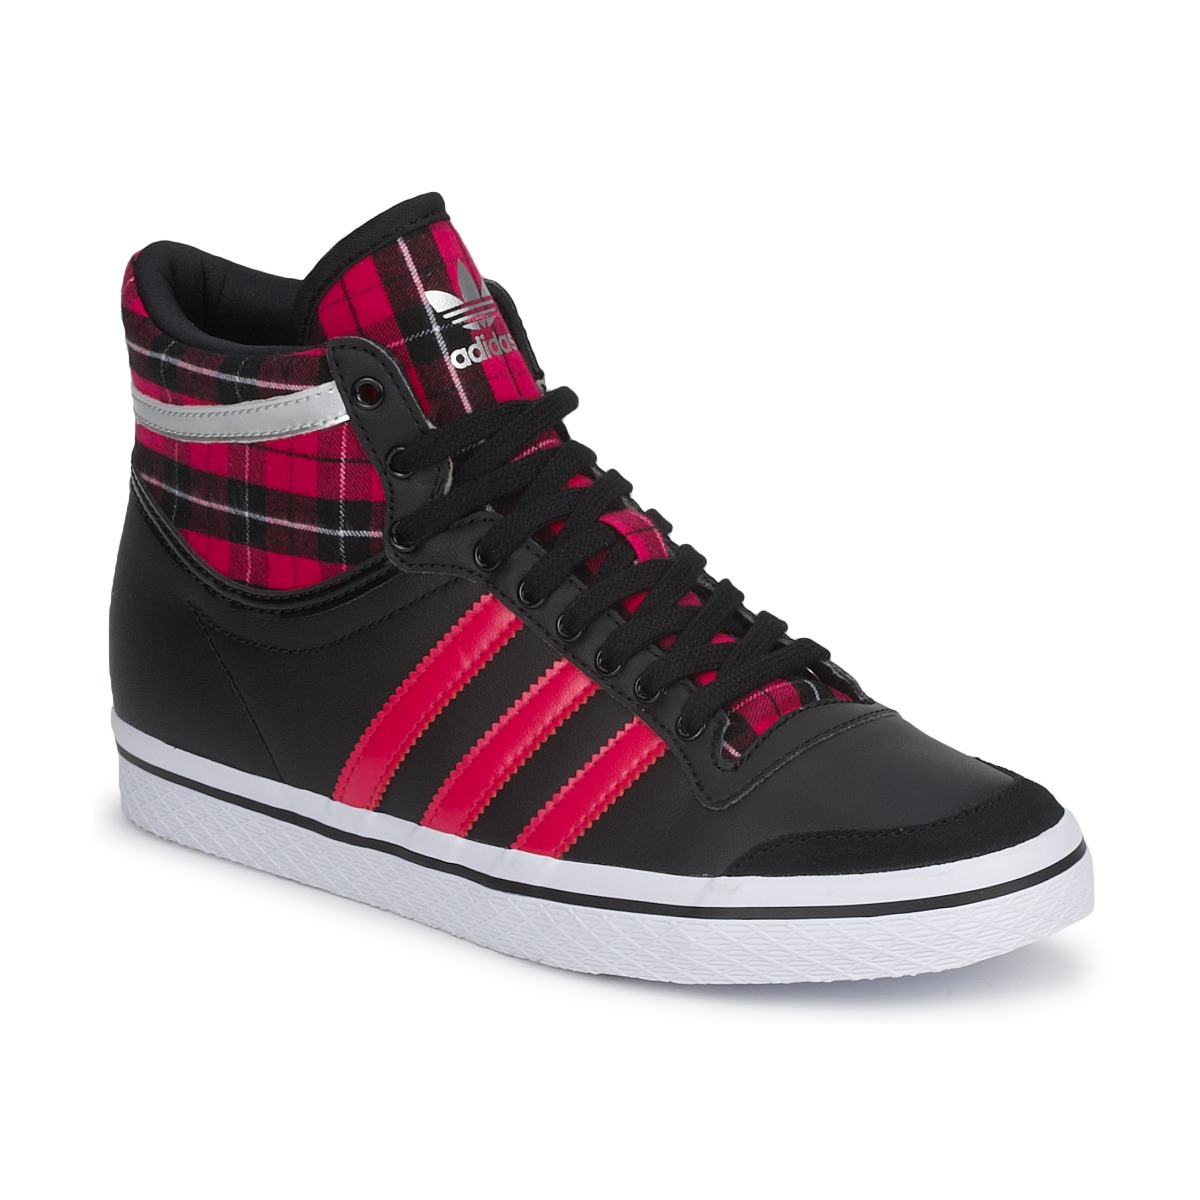 Adidas Chaussure Montante Montante Femme Chaussure Femme Adidas n0OXk8wP